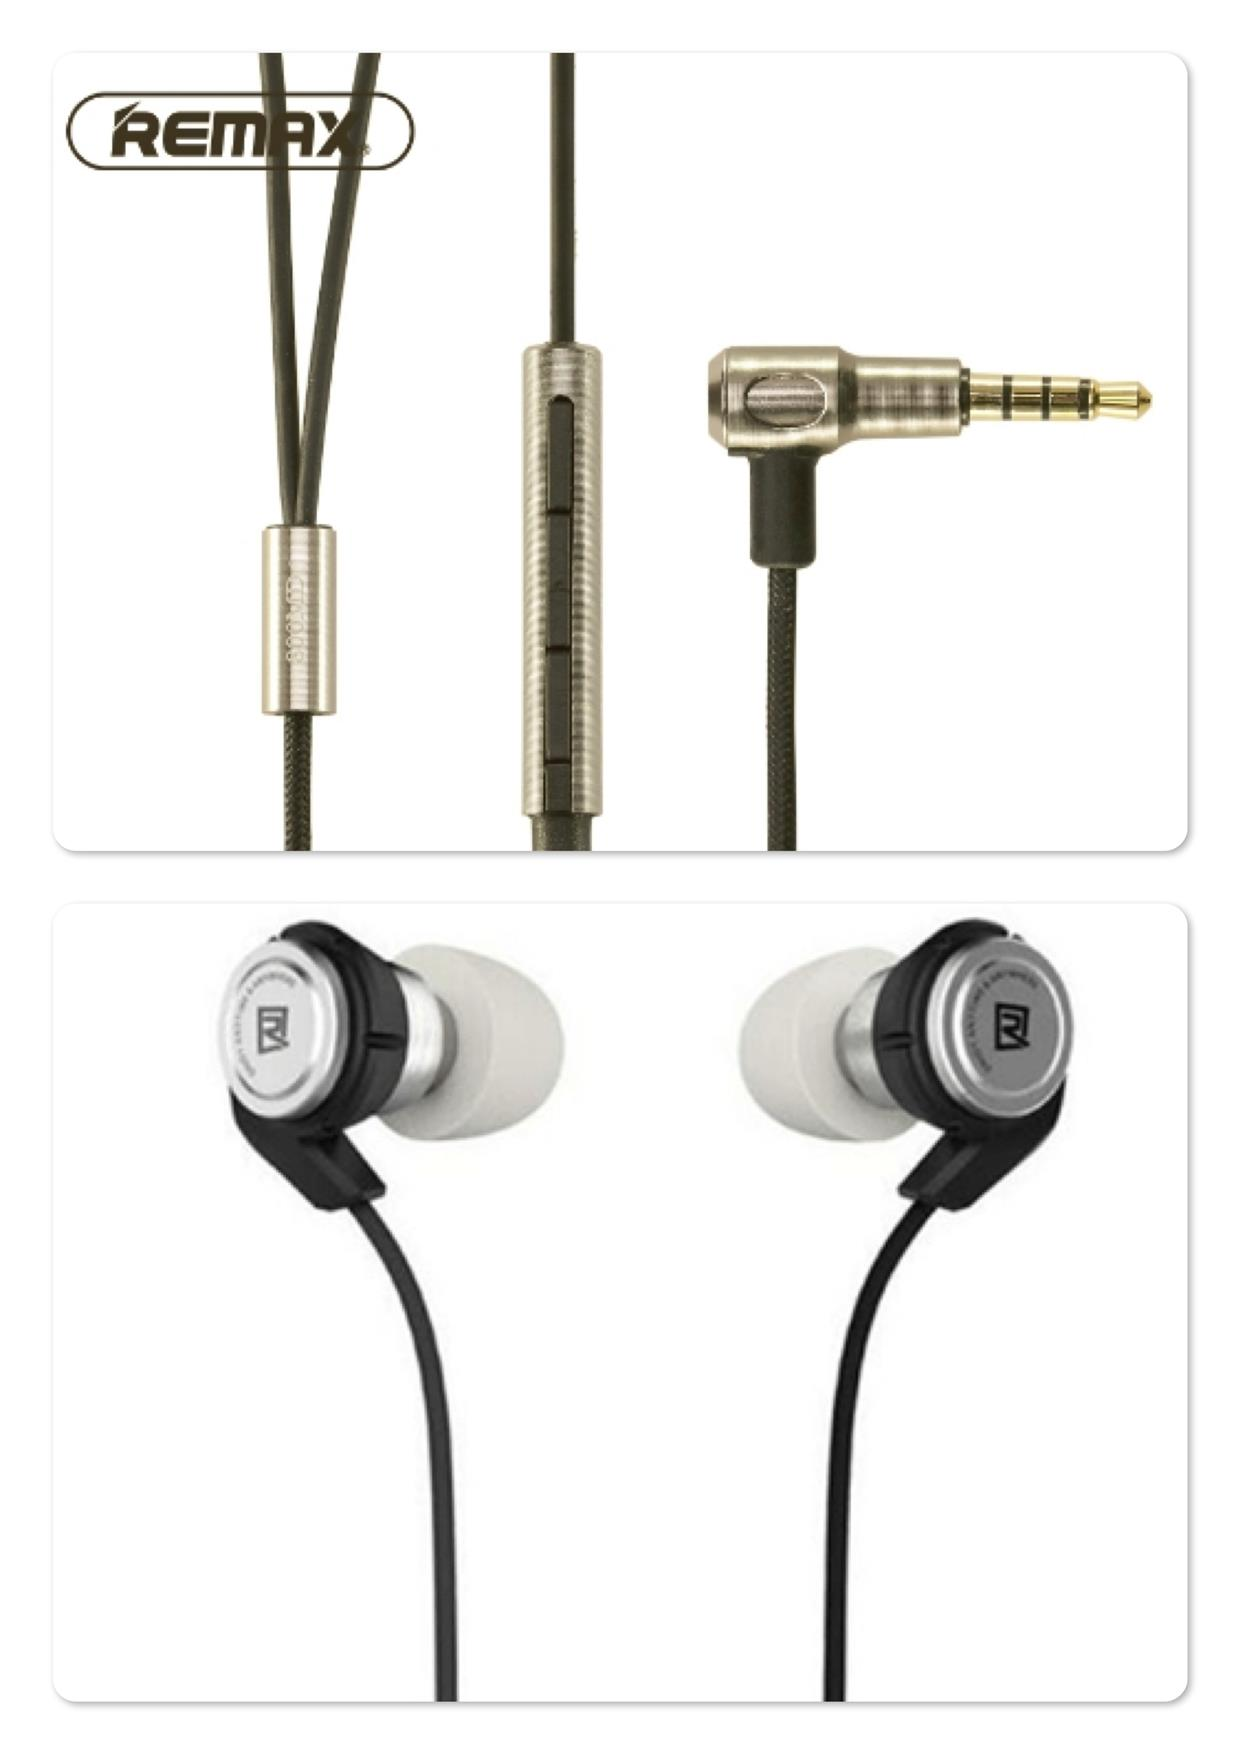 Remax RM-800MD Balanced Armature and Dynamic Hybrid Earphone